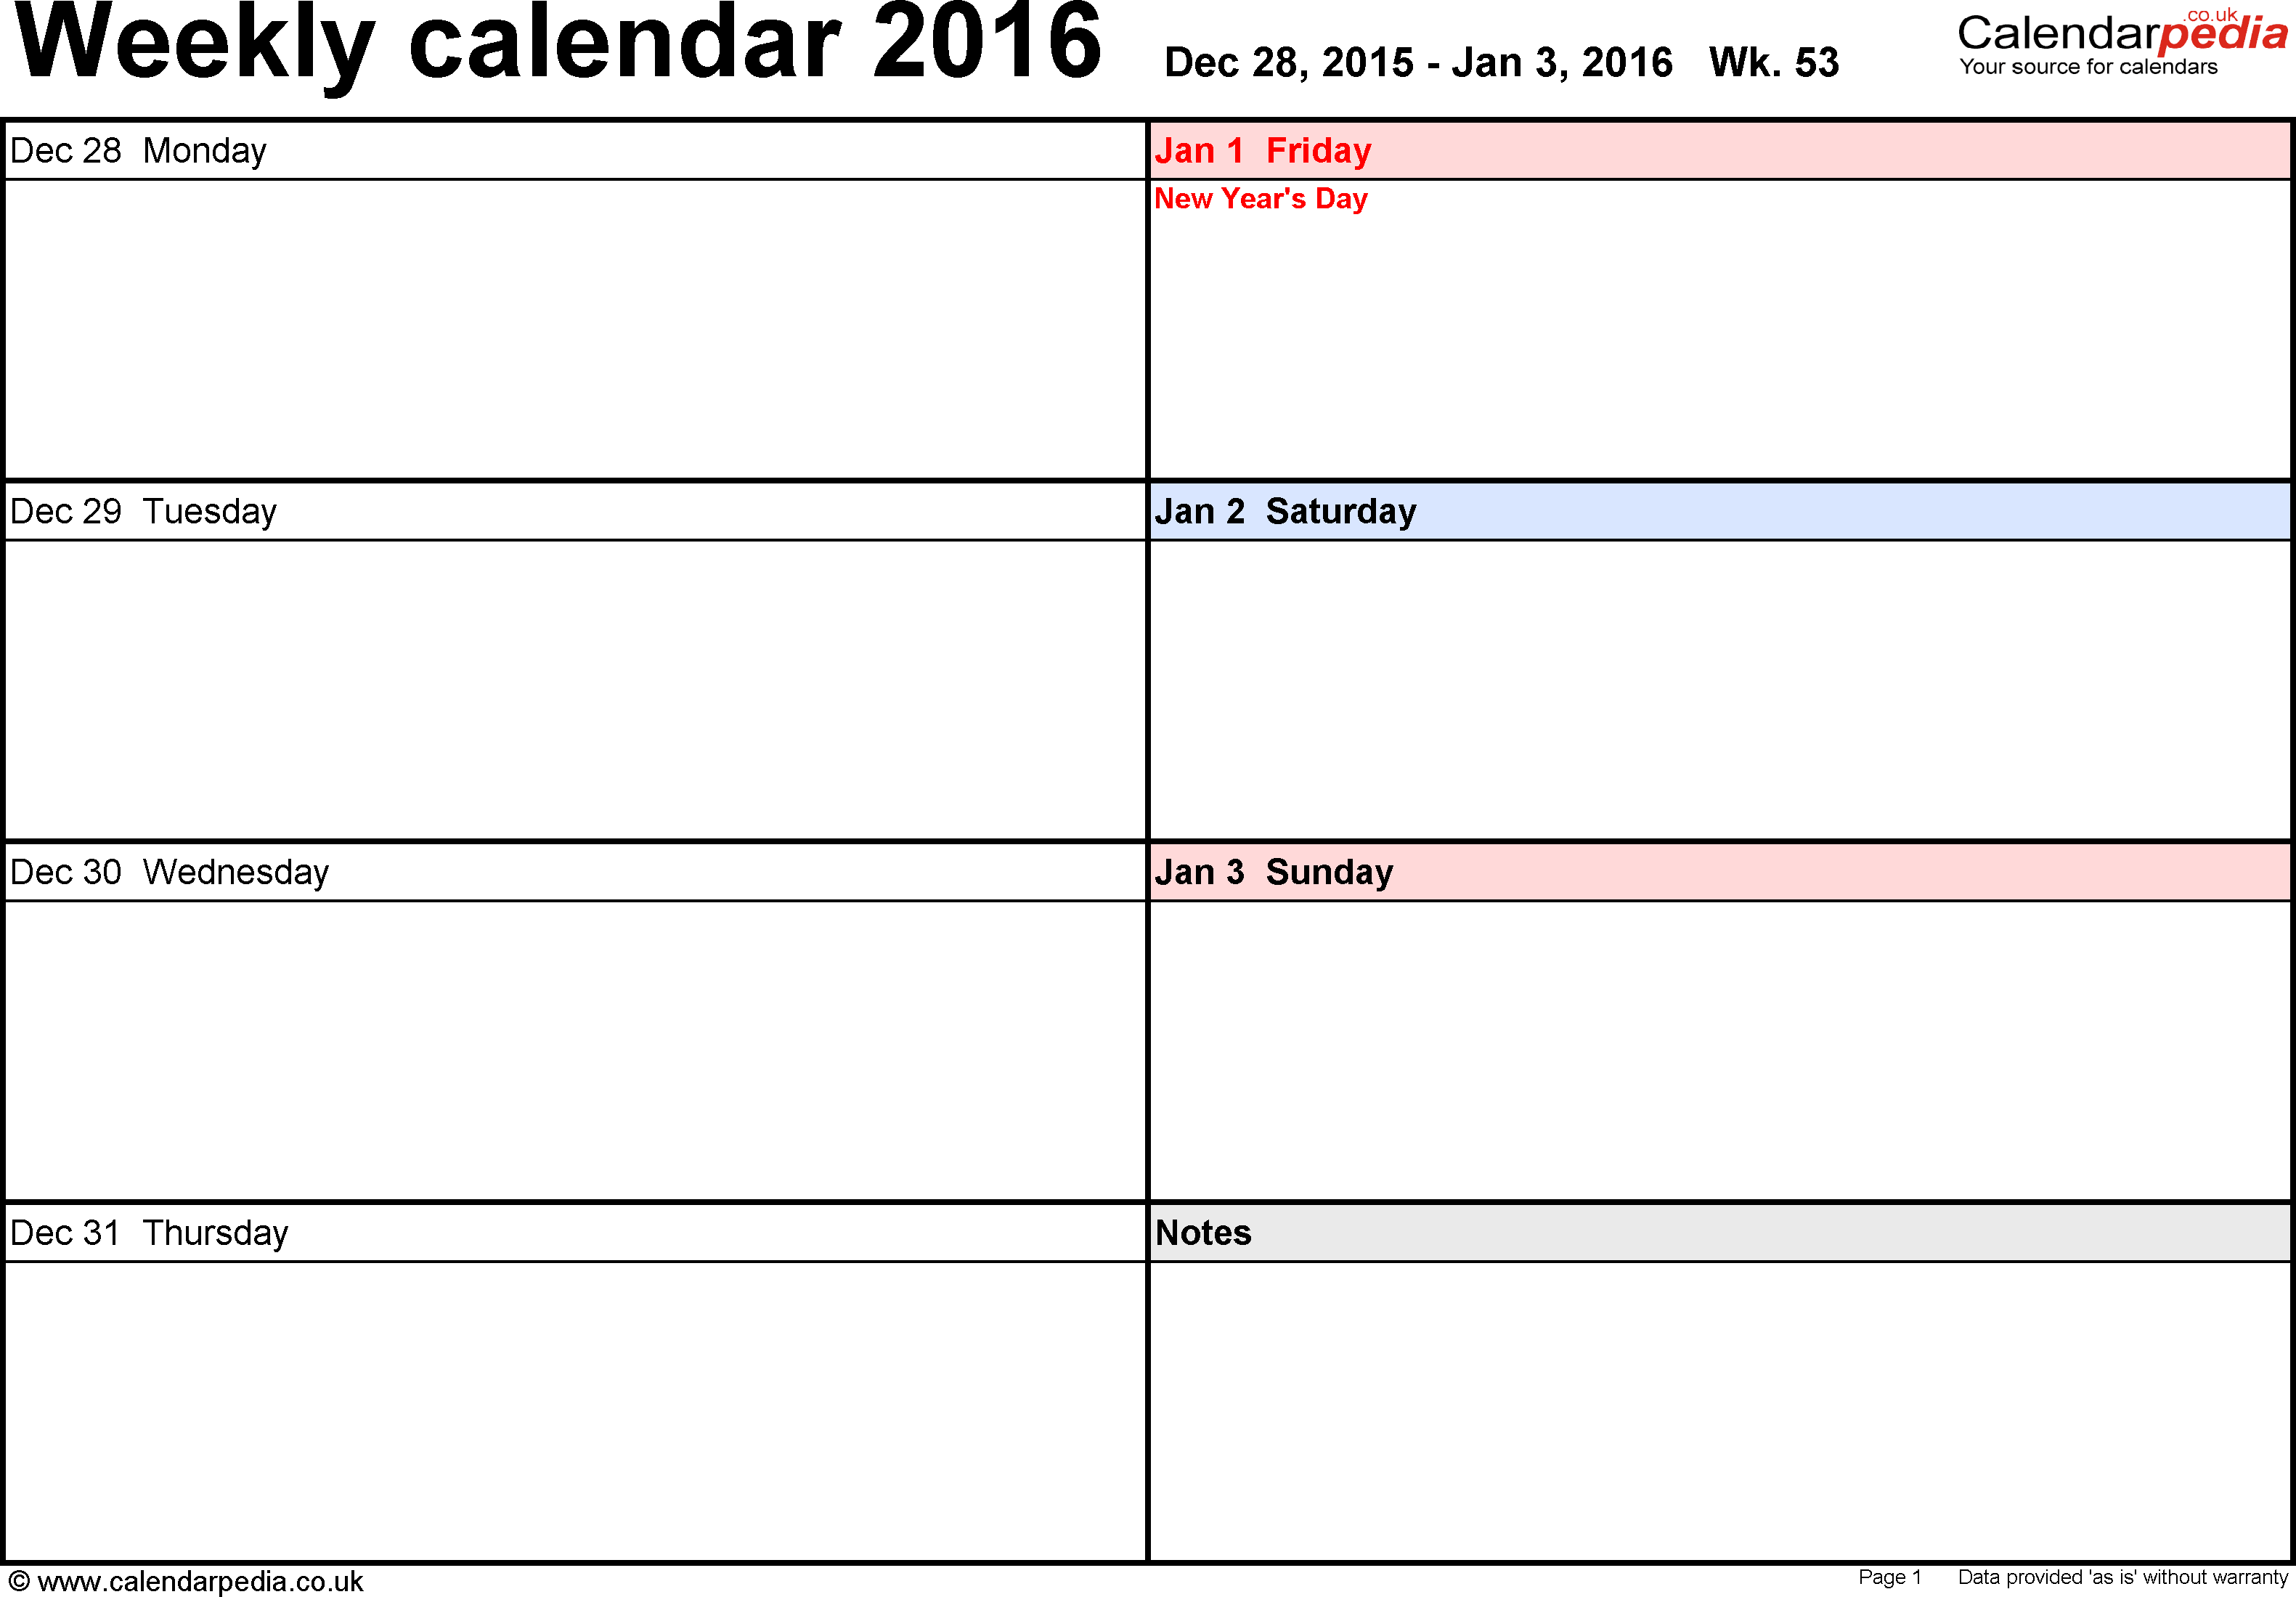 pdf template 6 weekly calendar 2016 landscape orientation days horizontally 53 pages